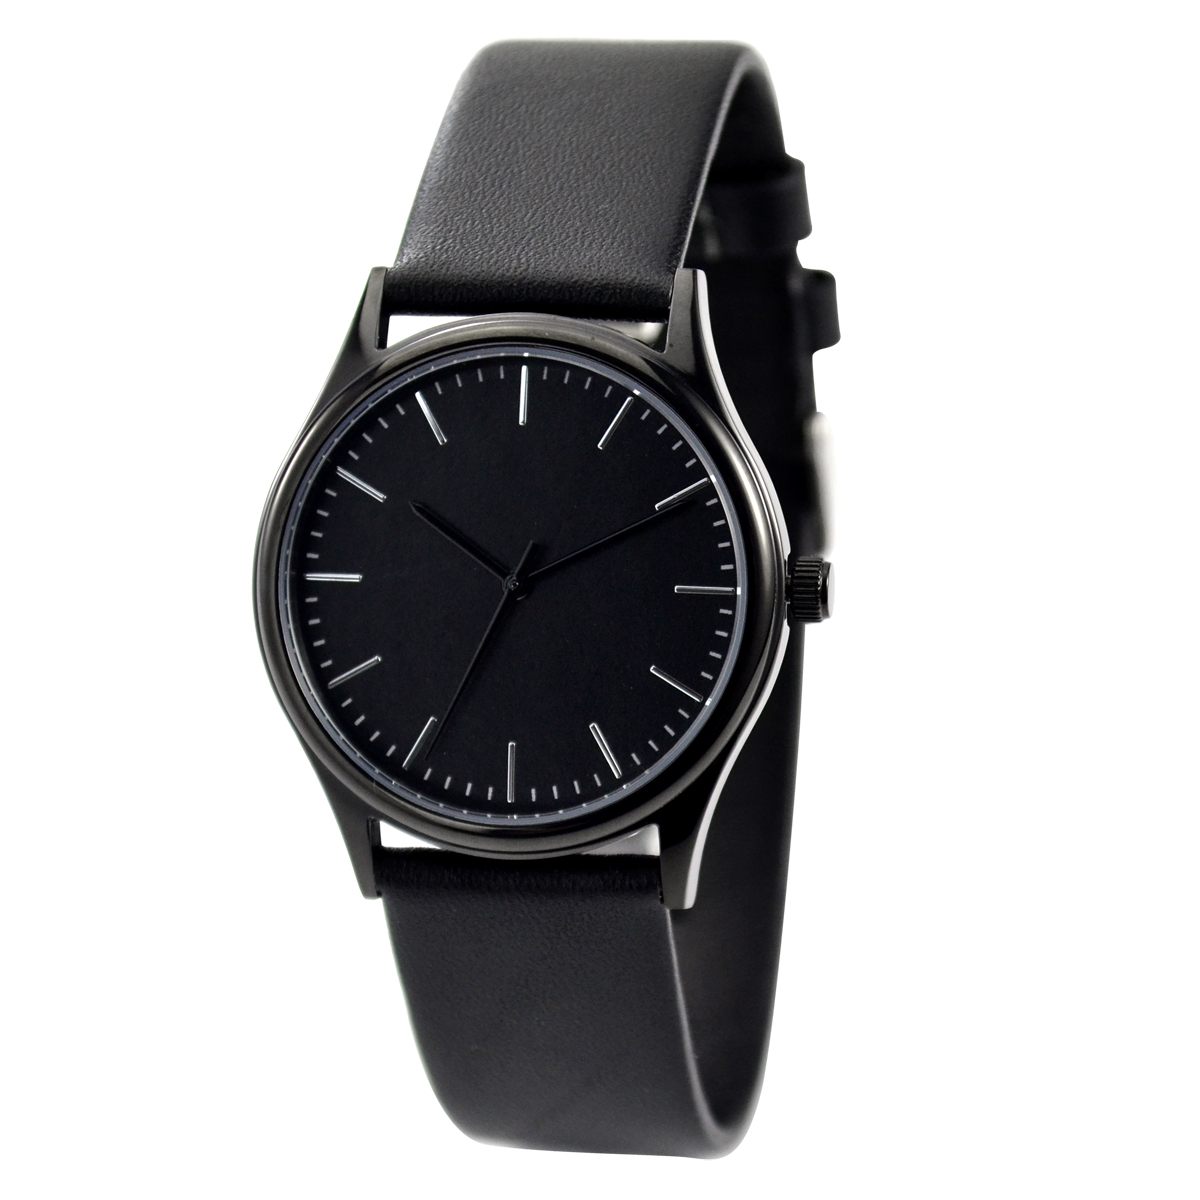 de21bc445 Minimalist Watch with thin stripes black case and face Free shipping on  Storenvy